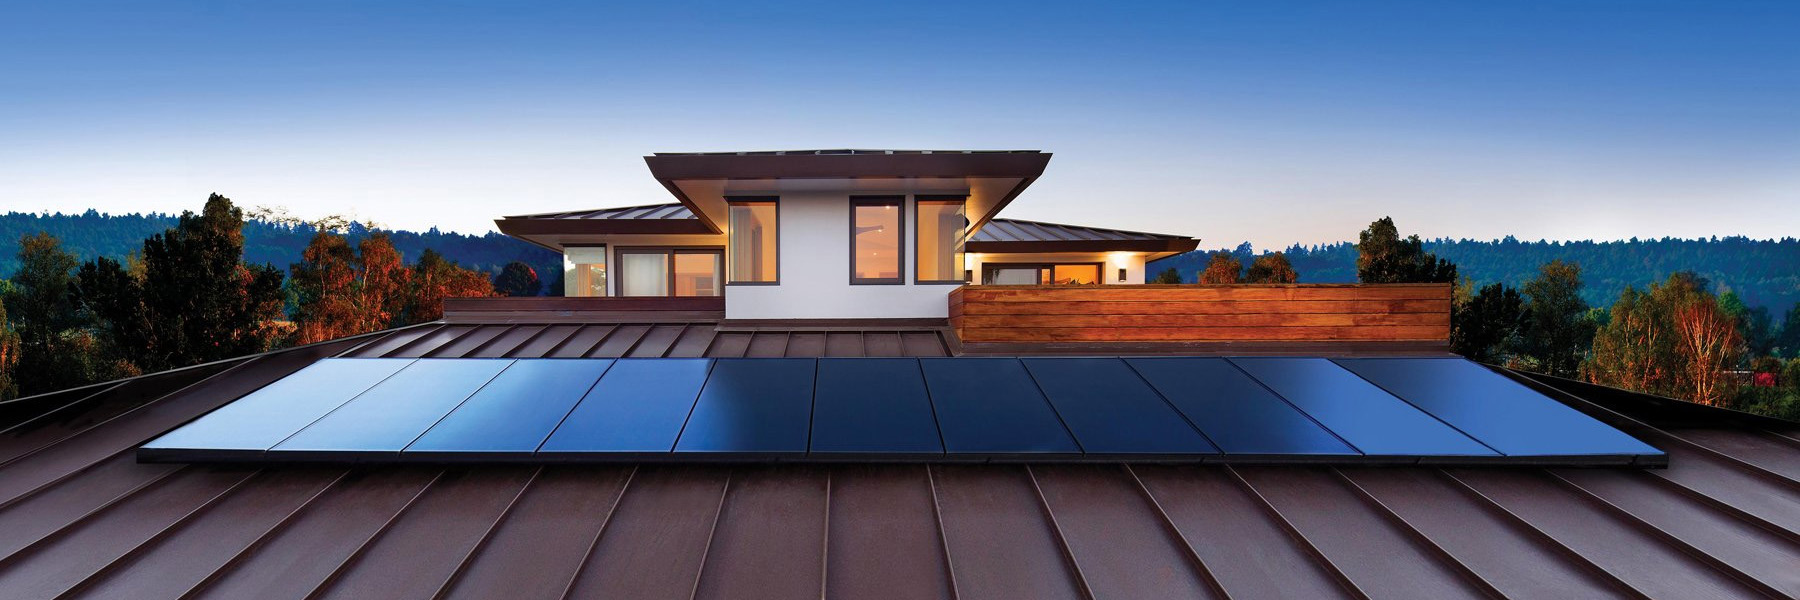 sunpower placas solares